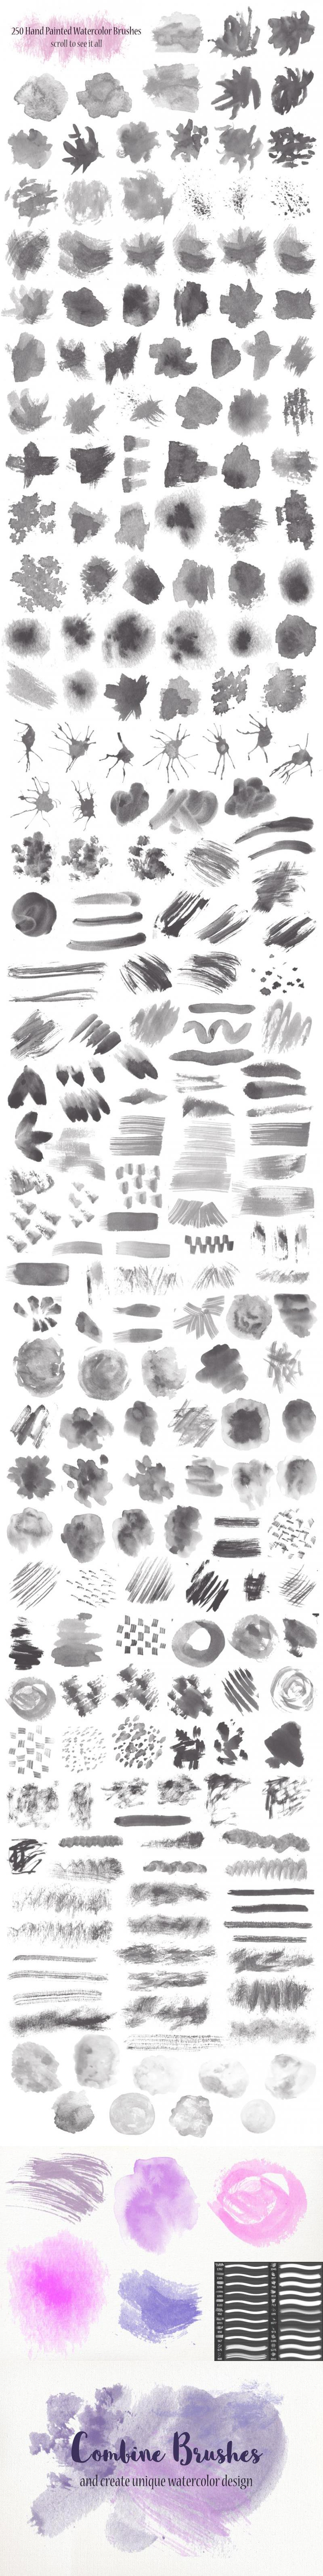 PS Watercolor Brush Kit 250 brushes